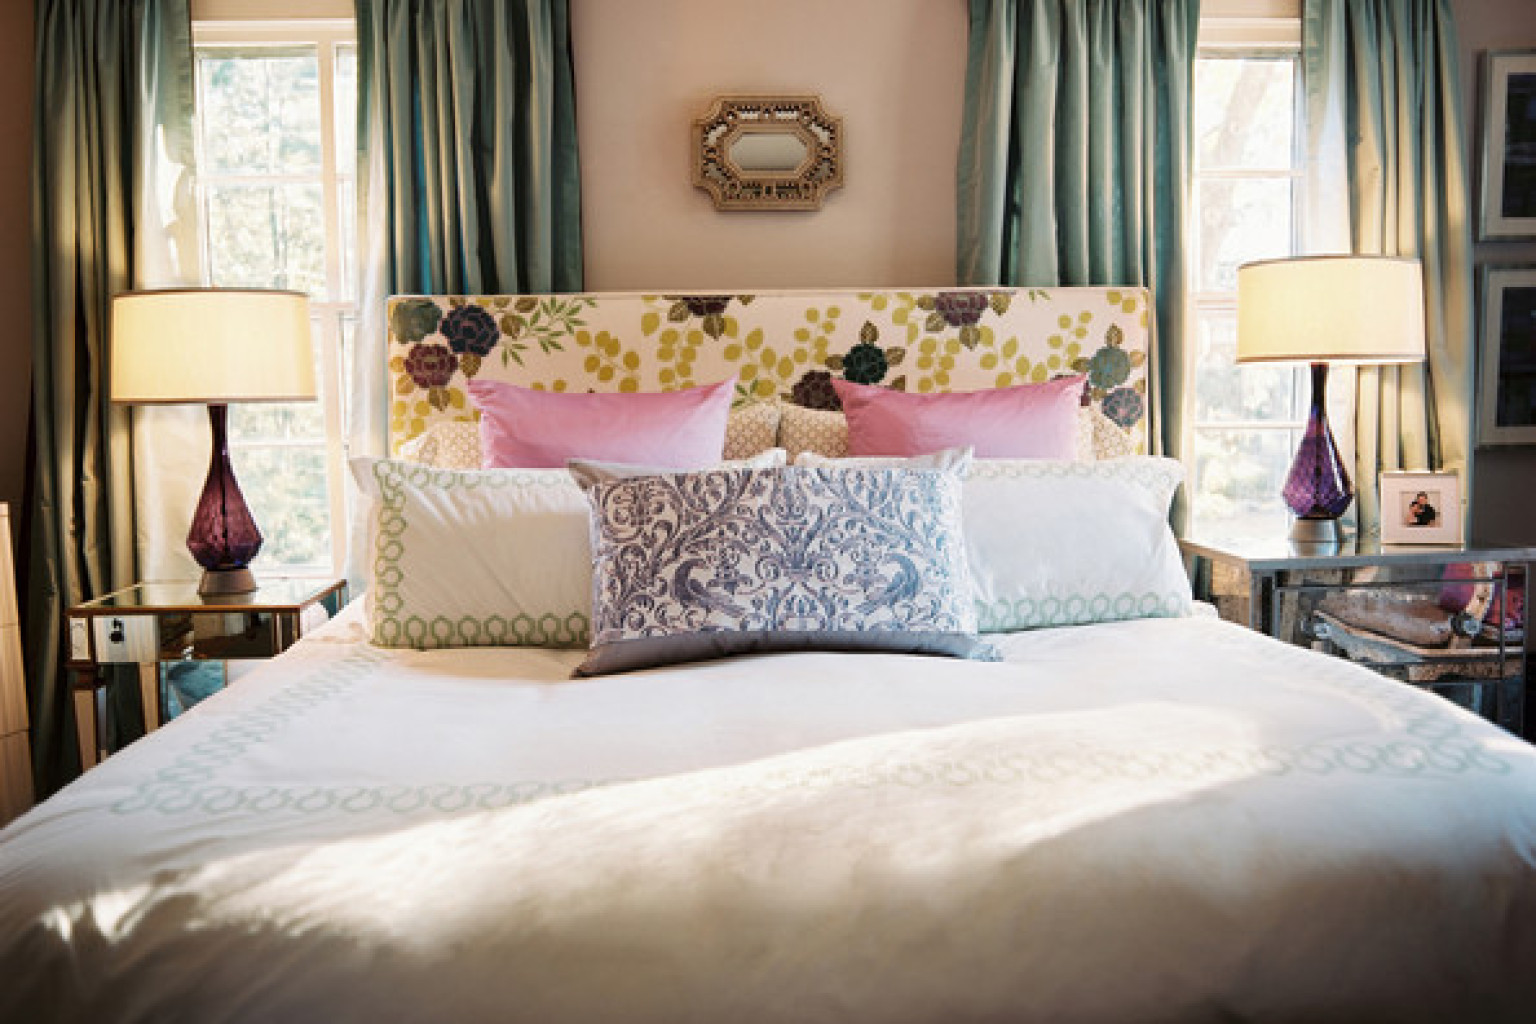 Romantic Bedrooms 8 romantic bedroom ideas from lonny that will totally get you in